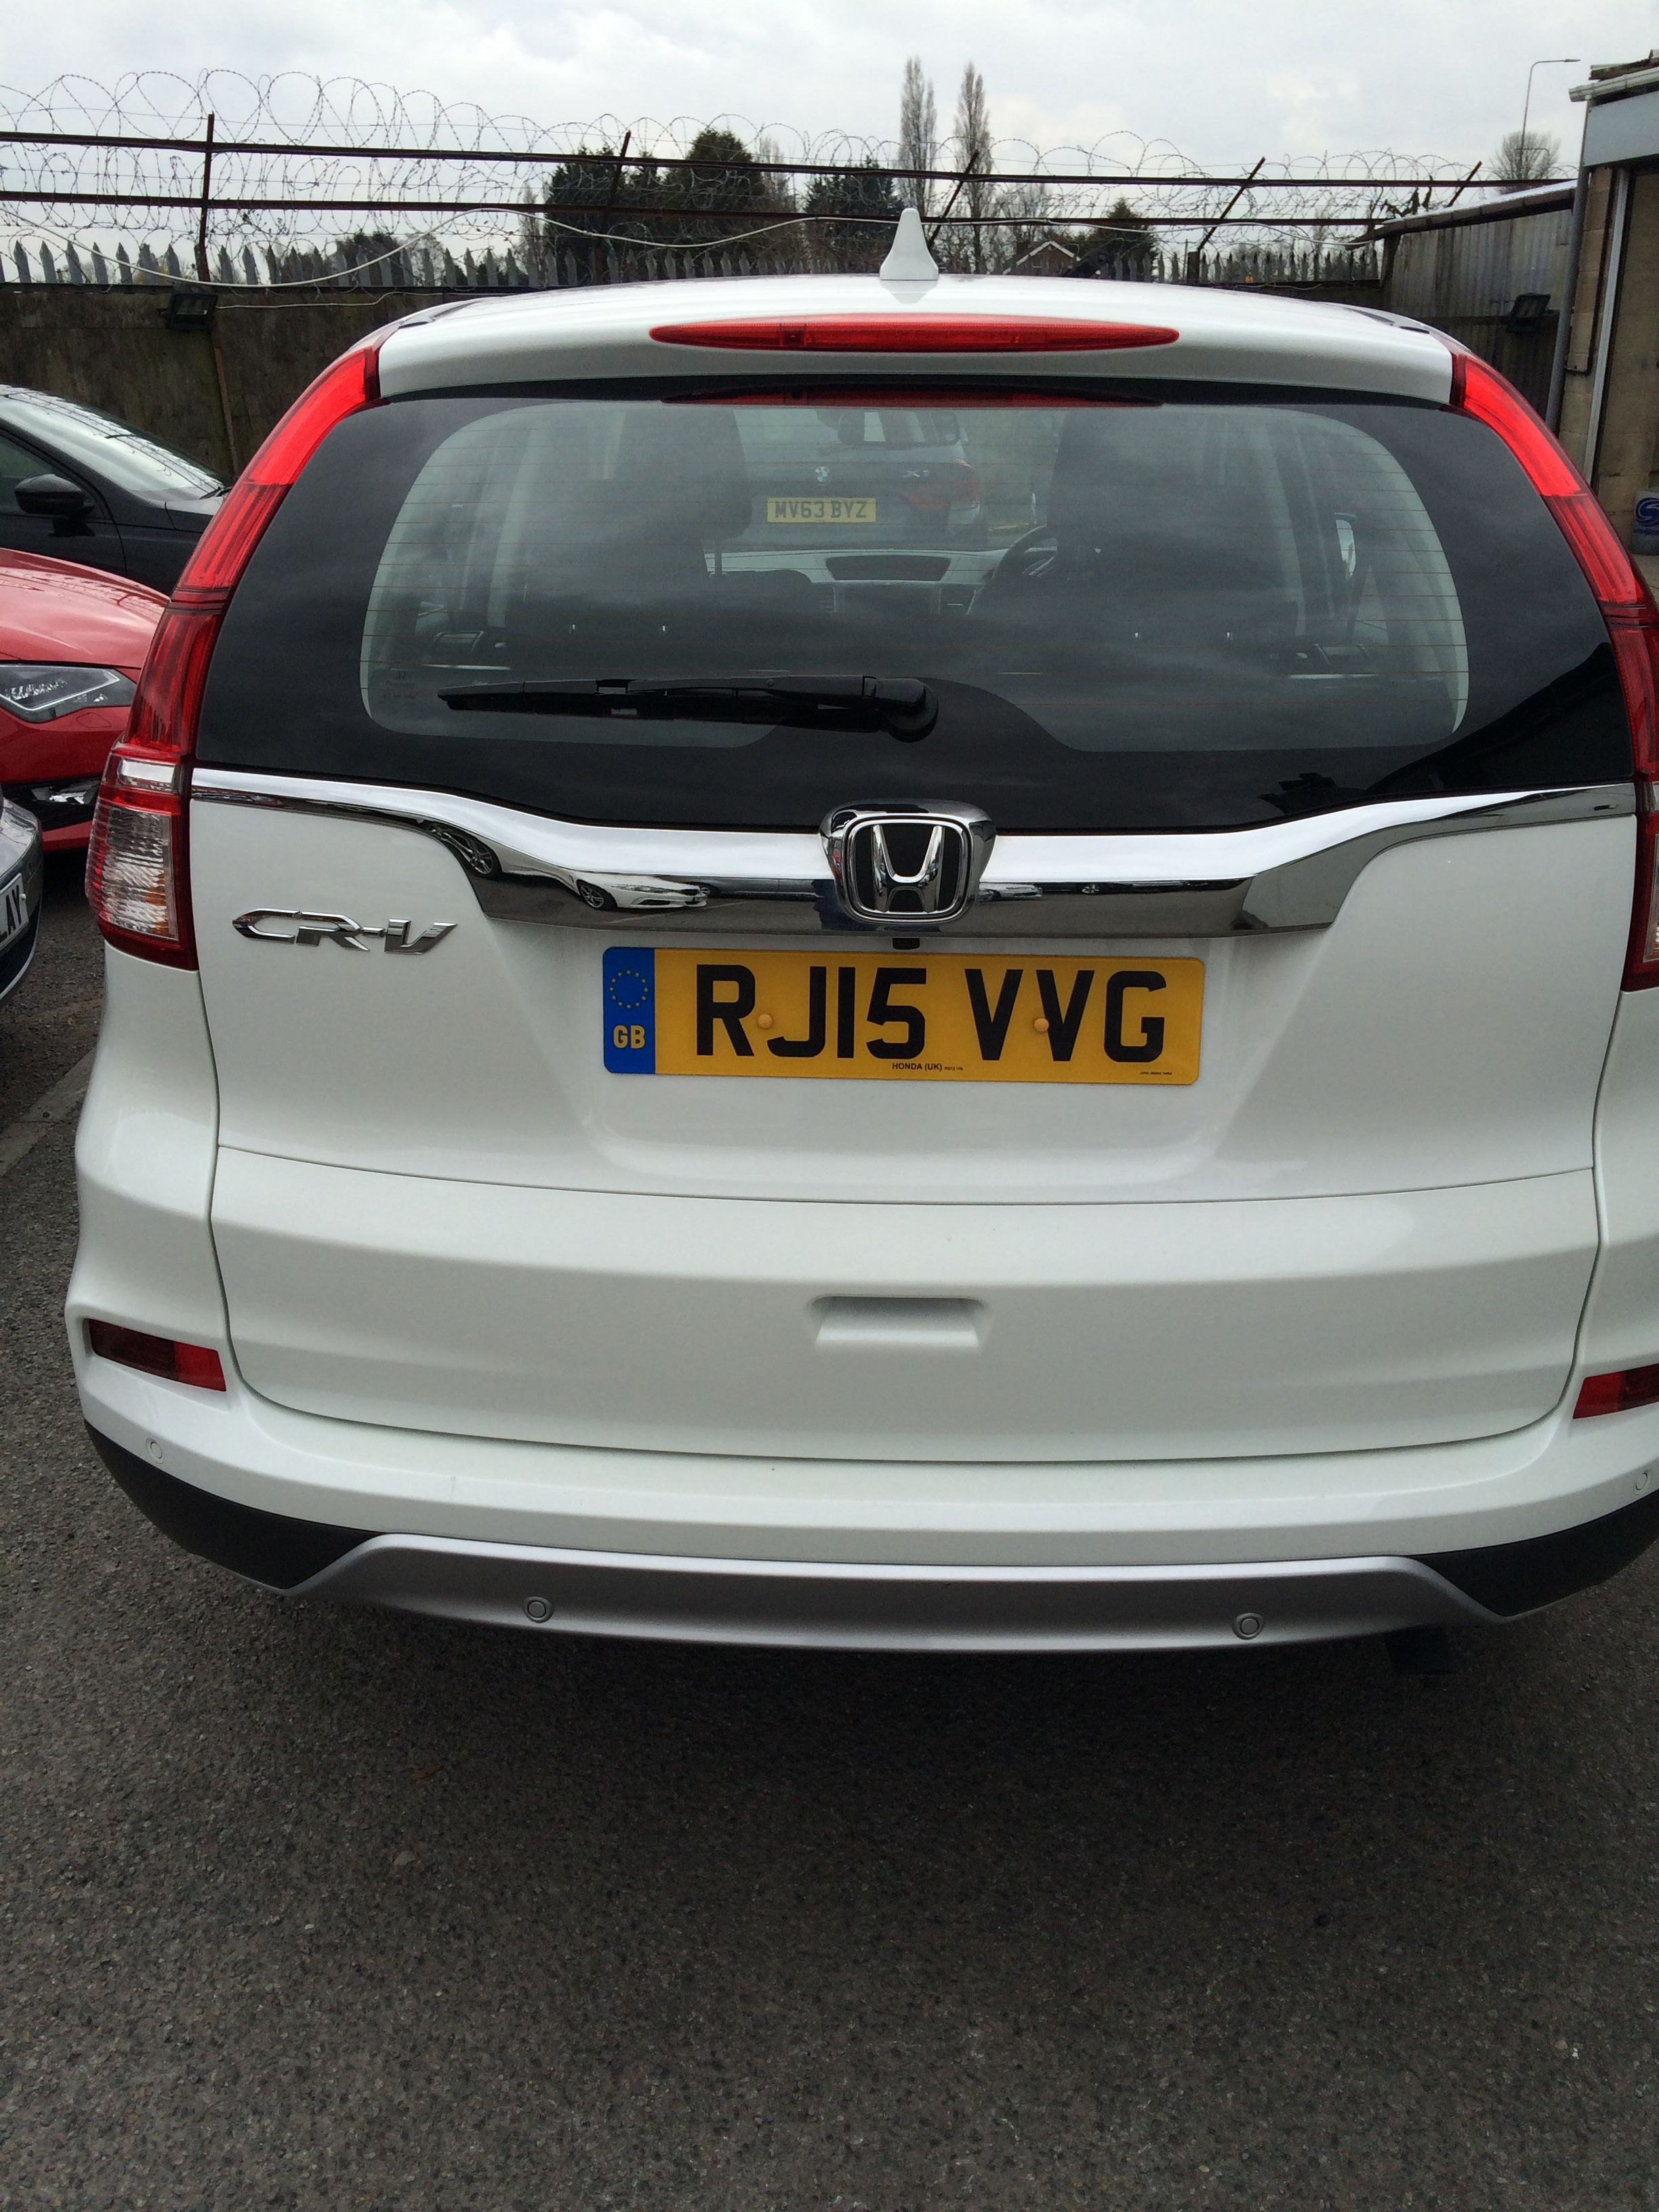 The Honda Crv Carleasing Deal One Of The Many Cars And Vans